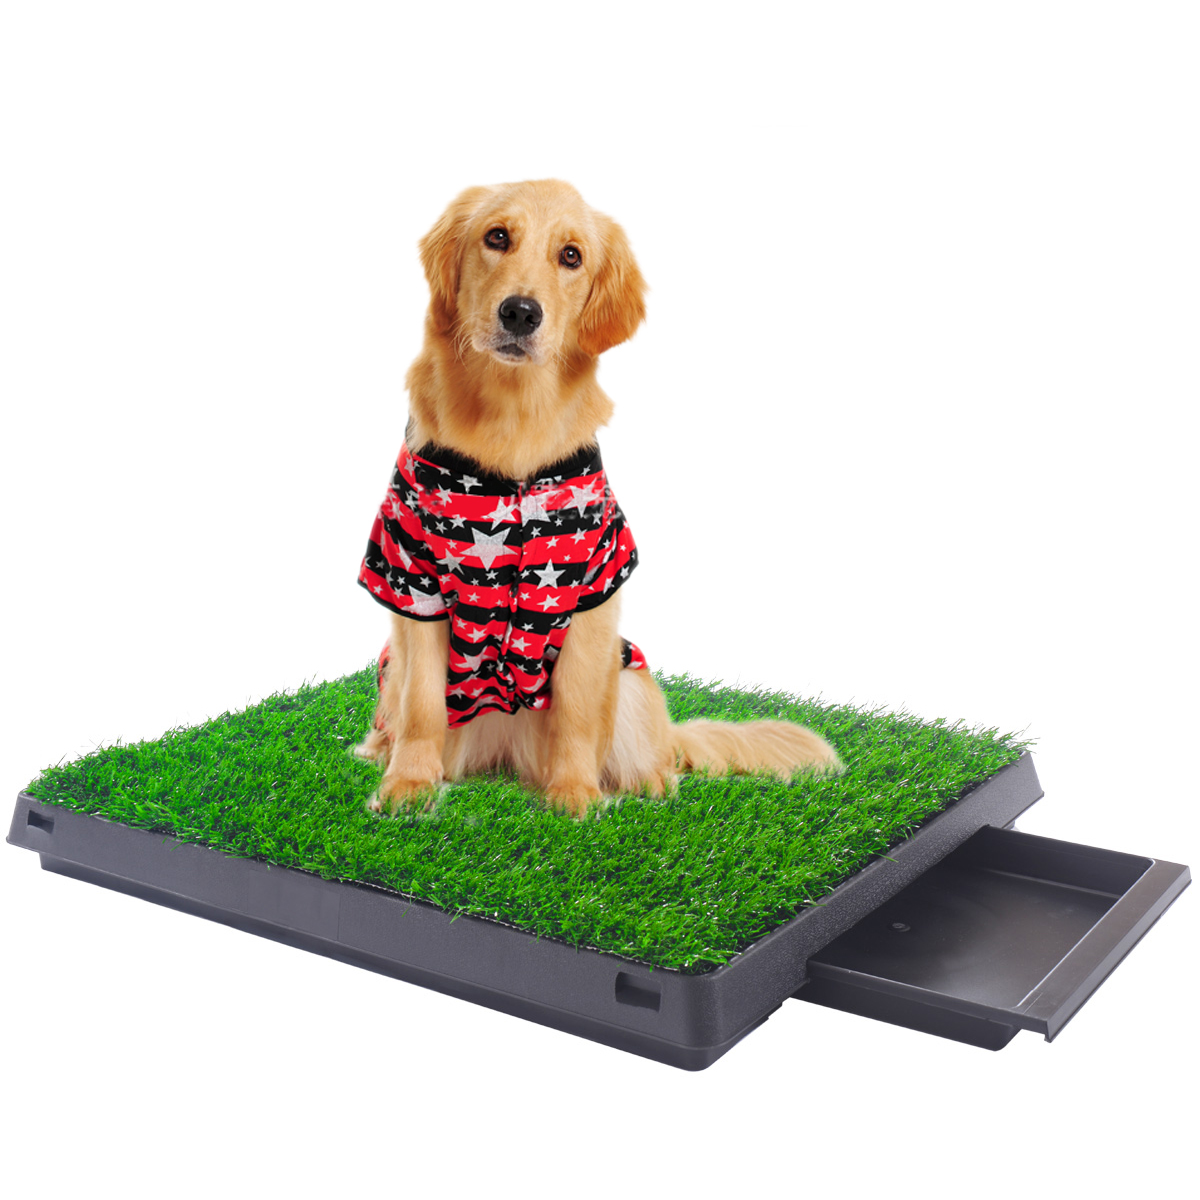 with Mesh+Collection Tray,for Home Indoor Restroom Toilet Pee Training Large Dog Pet Potty Mat Grass Pad Nikou Pet Potty Mat